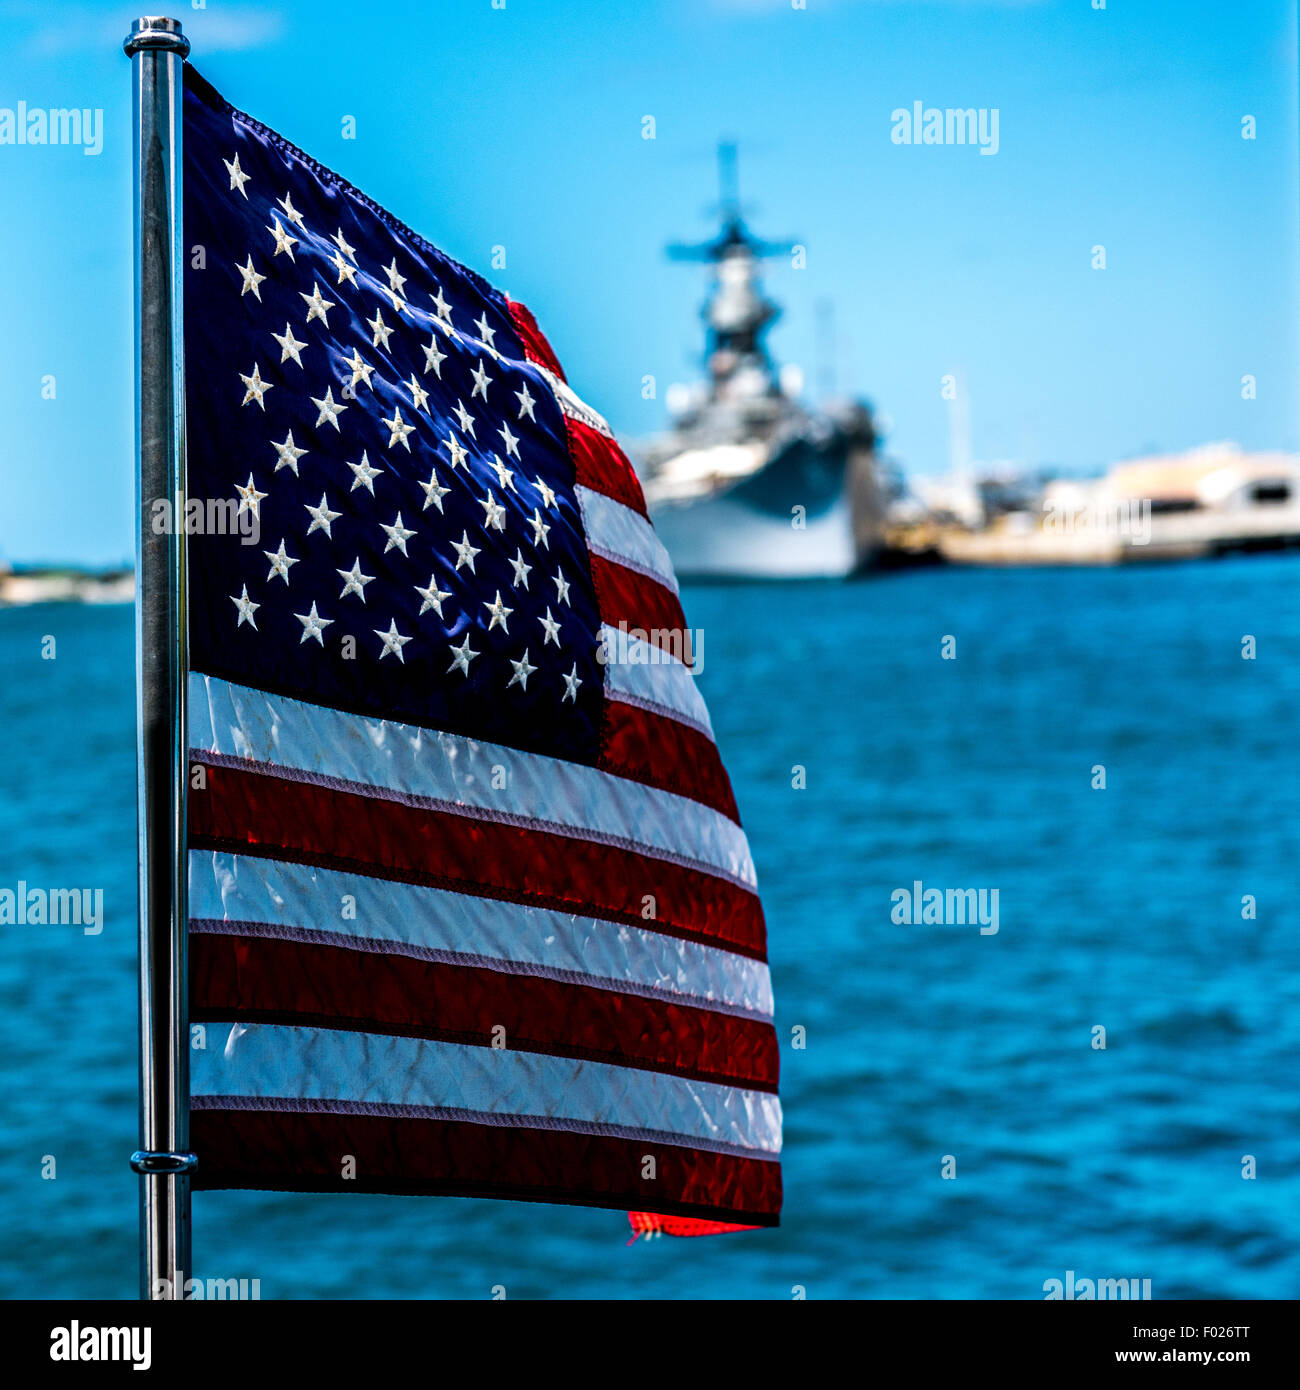 American flag blowing in the wind with navy ship in the background, Hawaii - Stock Image